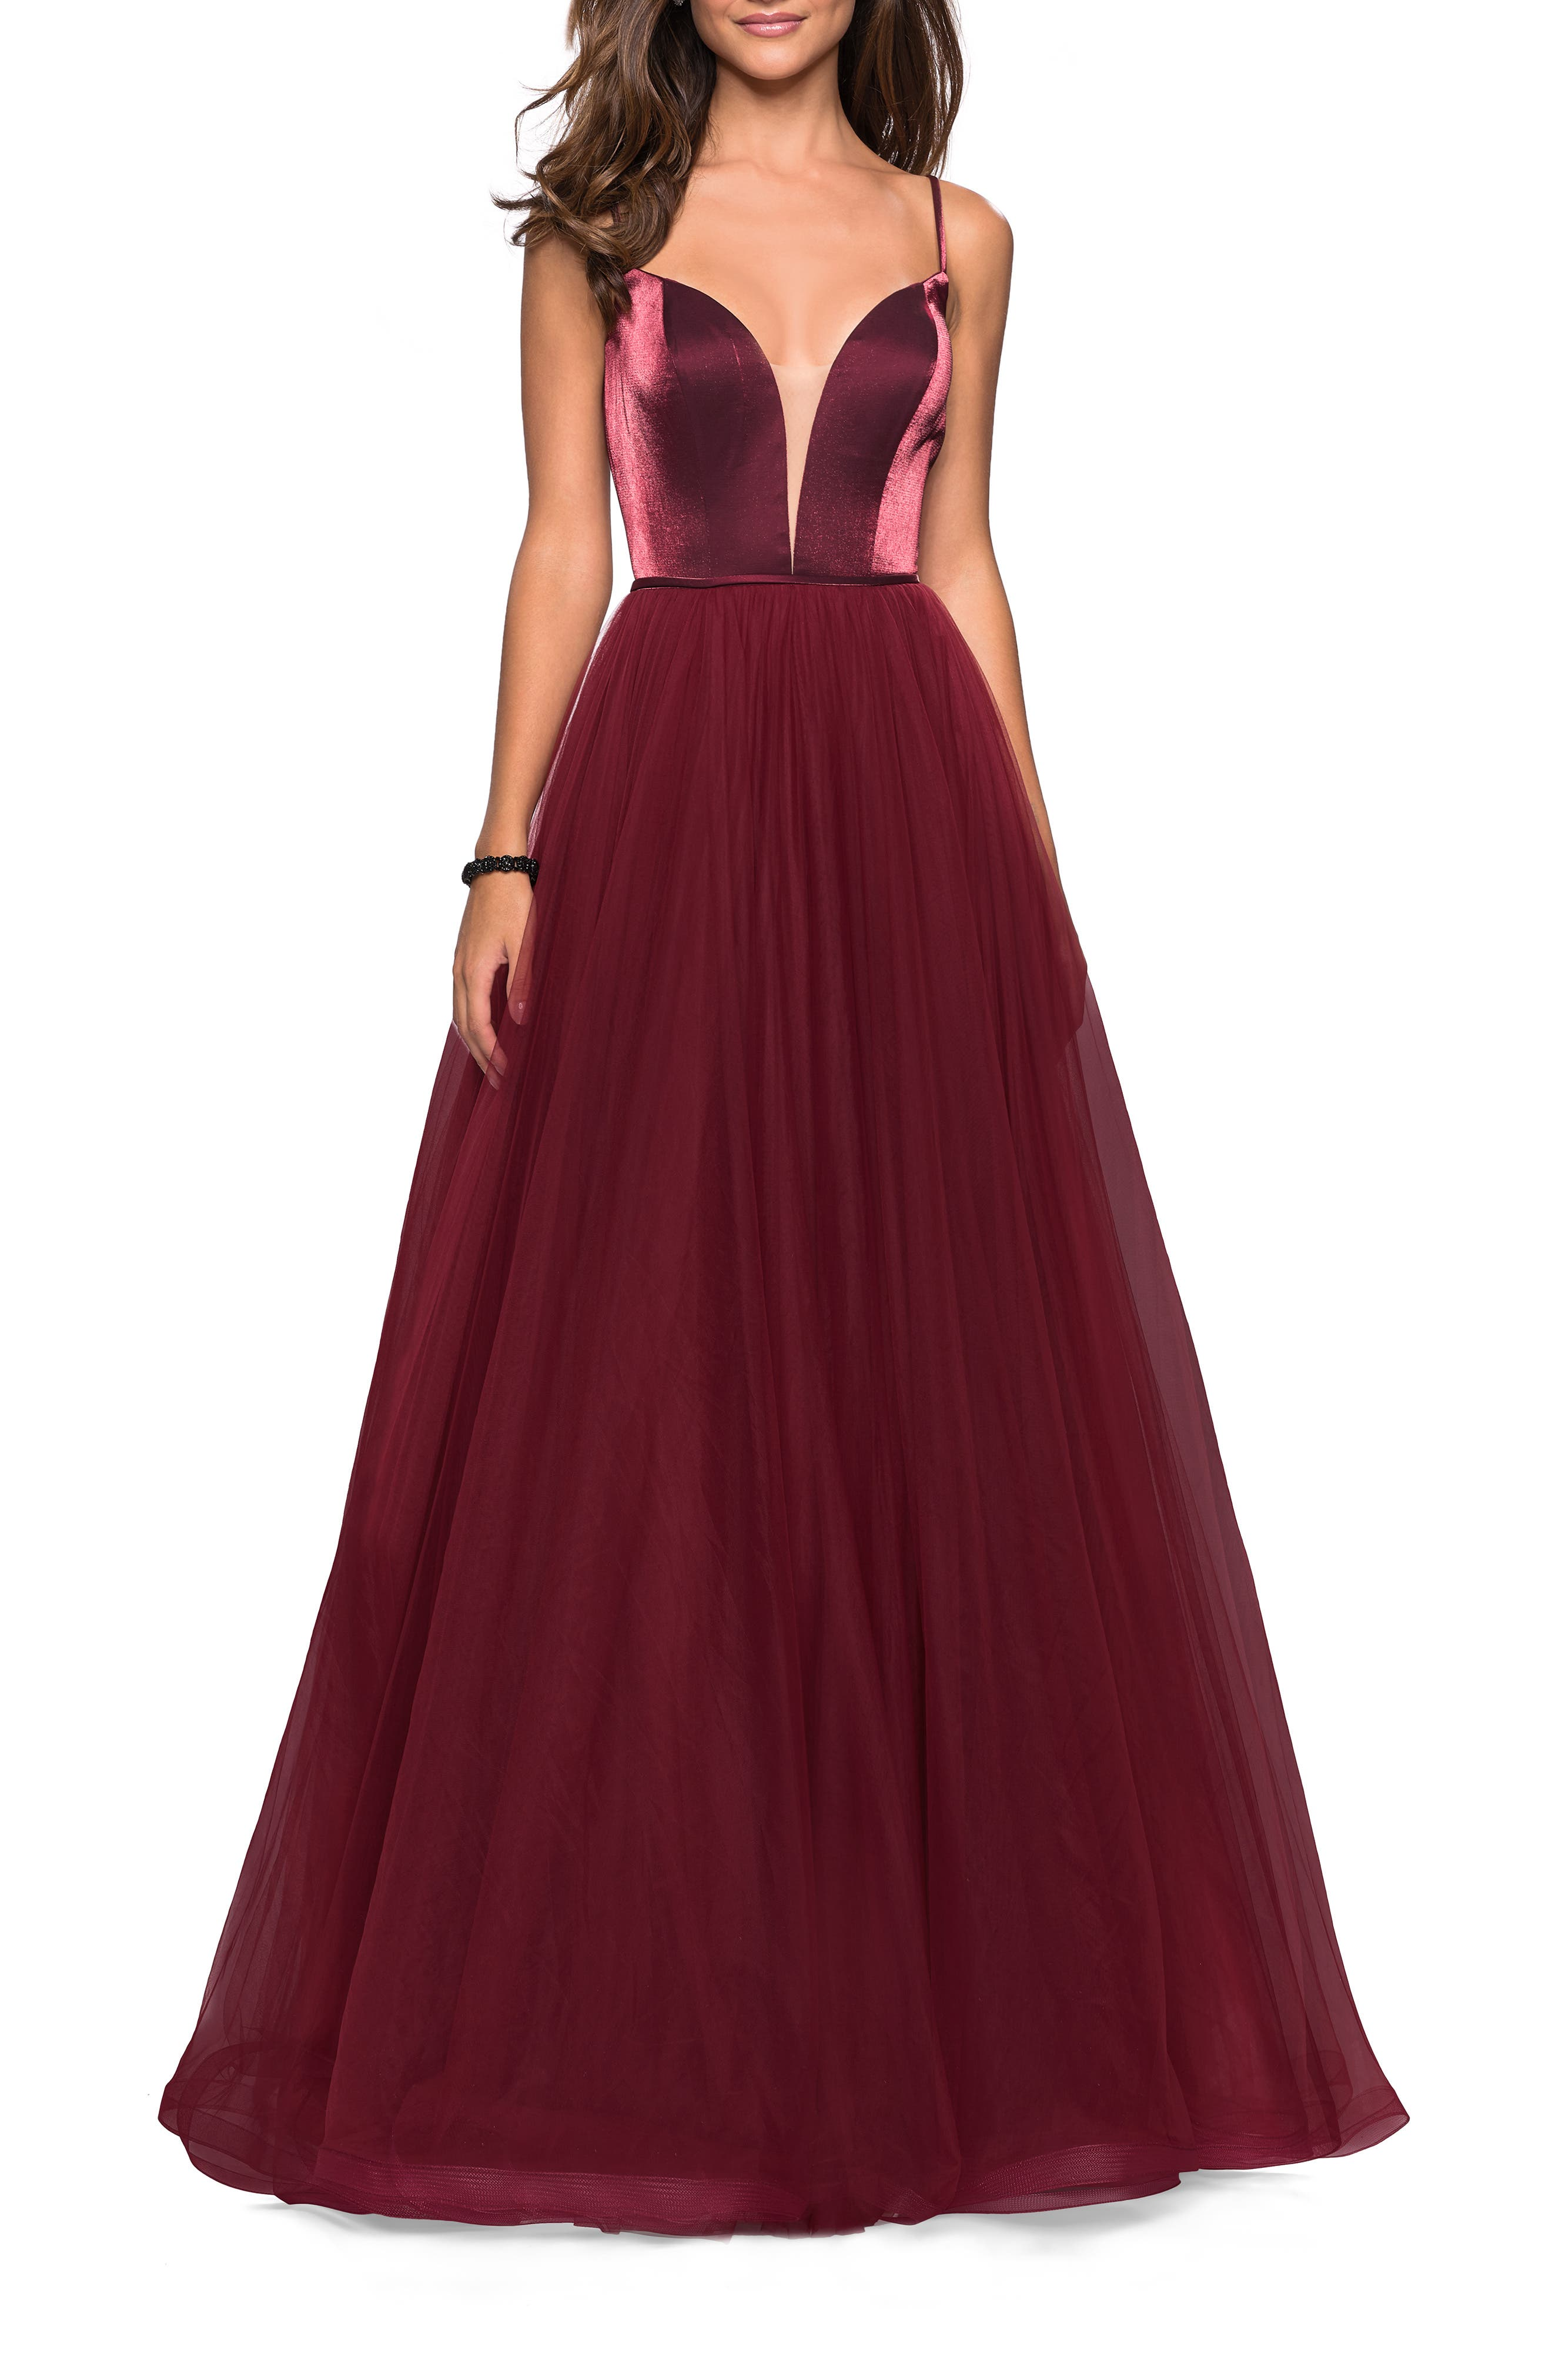 La Femme Velvet & Tulle Evening Dress, Burgundy